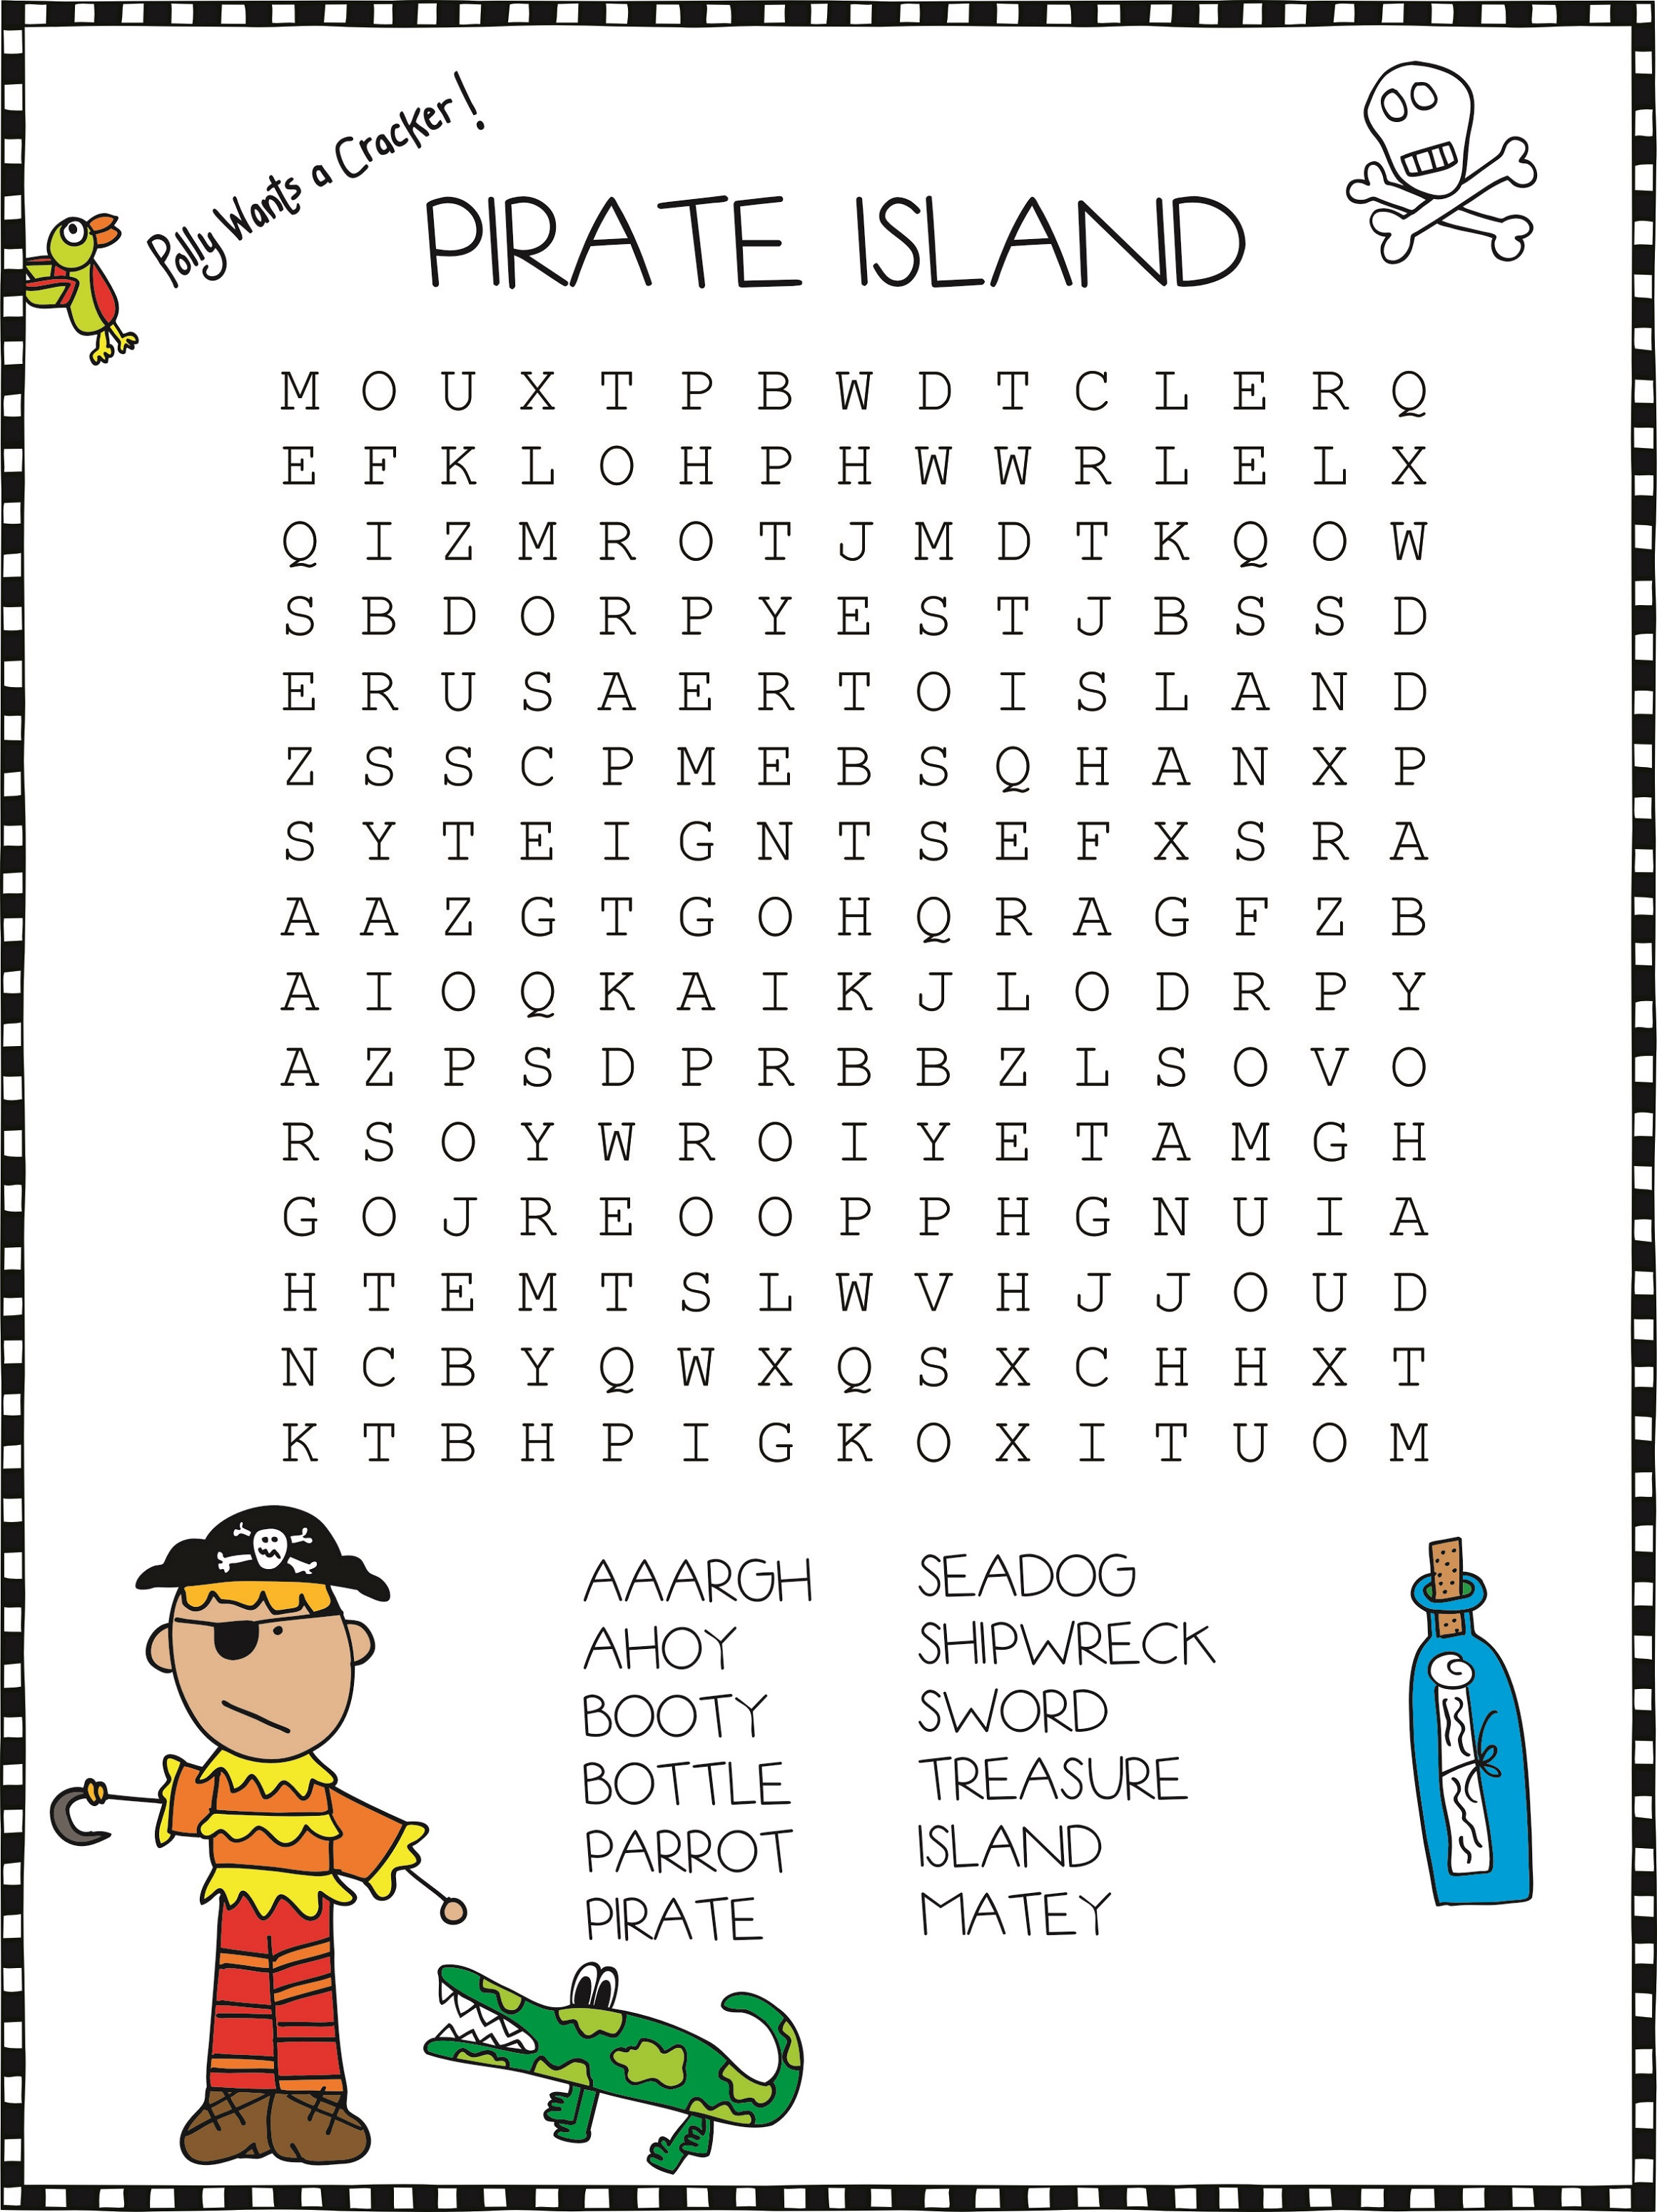 Pirate Crossword Puzzles Easy And Hard